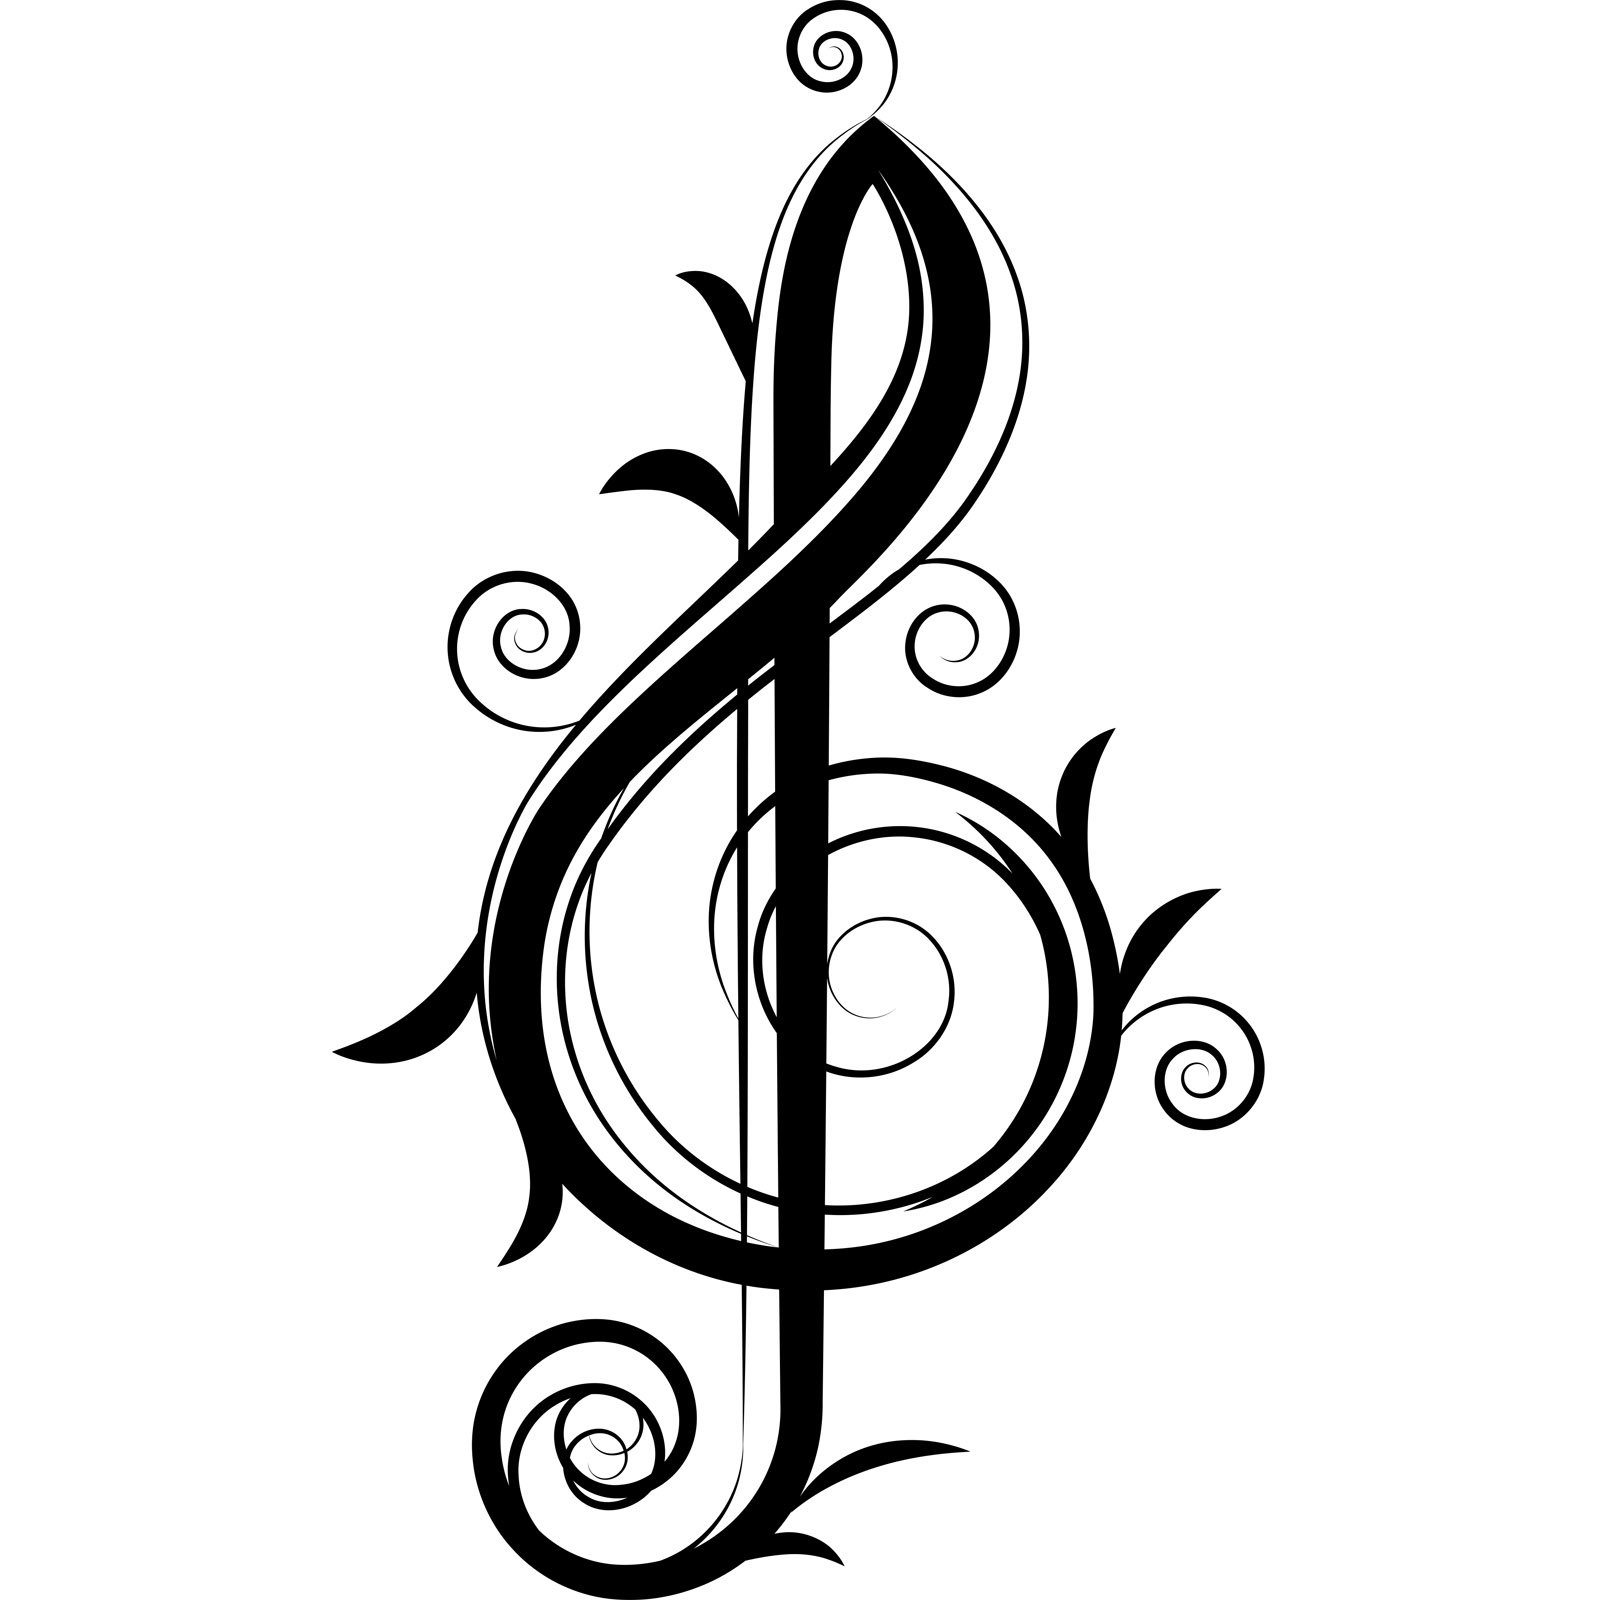 Fancy Teble Clef Musical Wall Sticker Decal